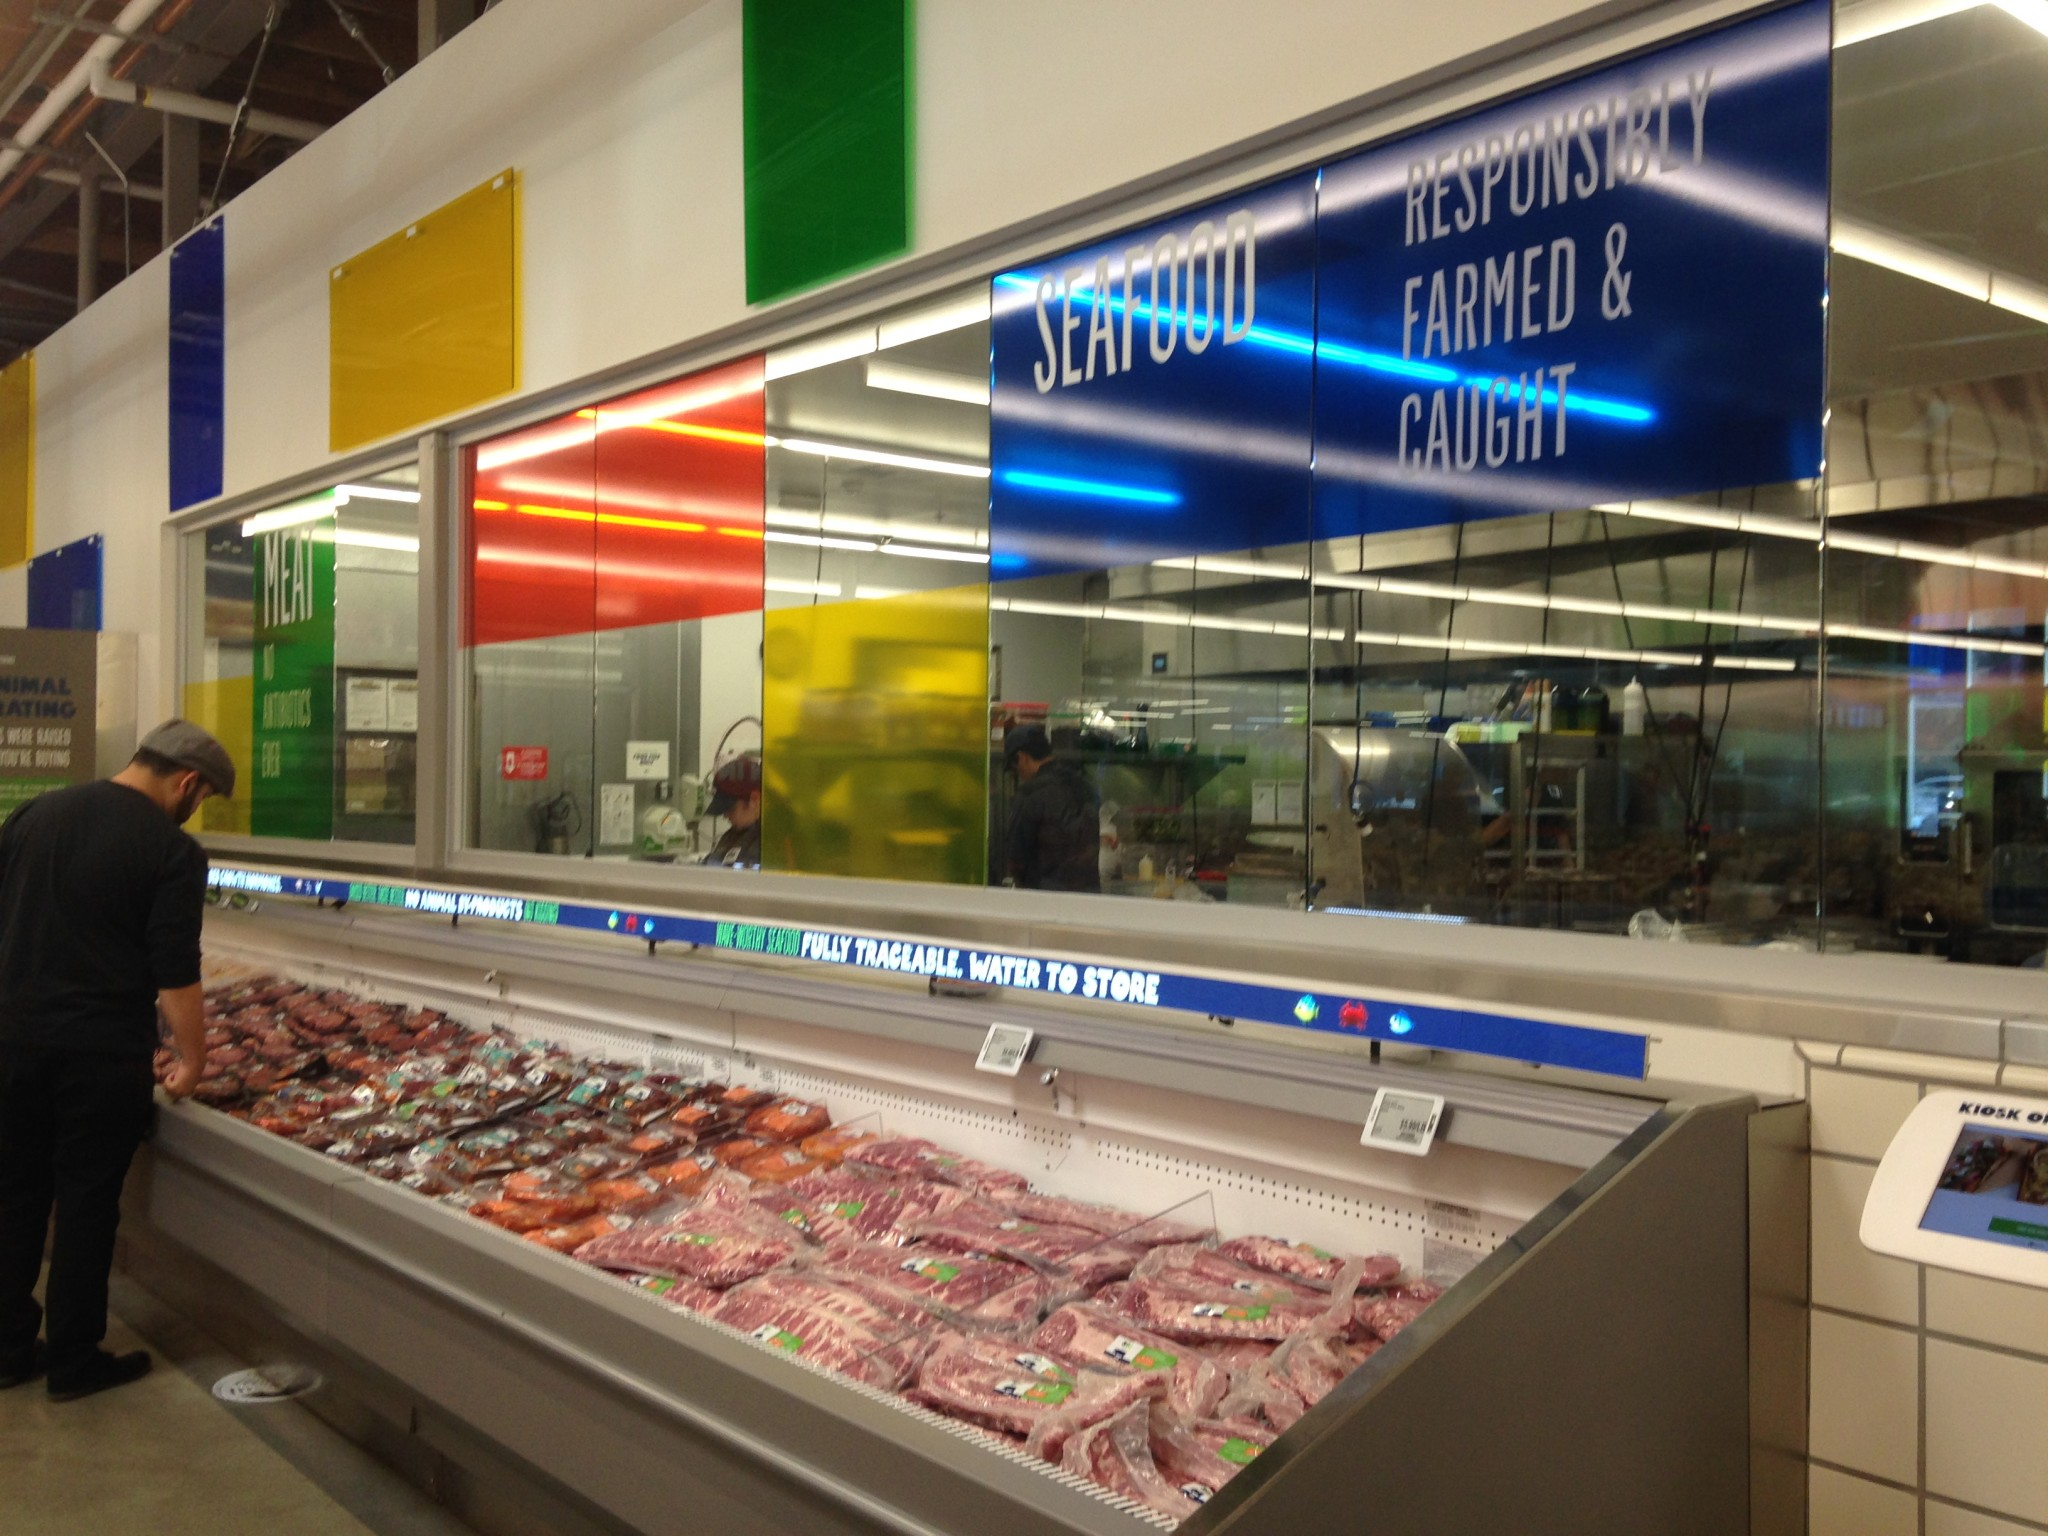 Bright colors and assuring signage at the 365 by Whole Foods Market. Photo by Avishay Artsy.